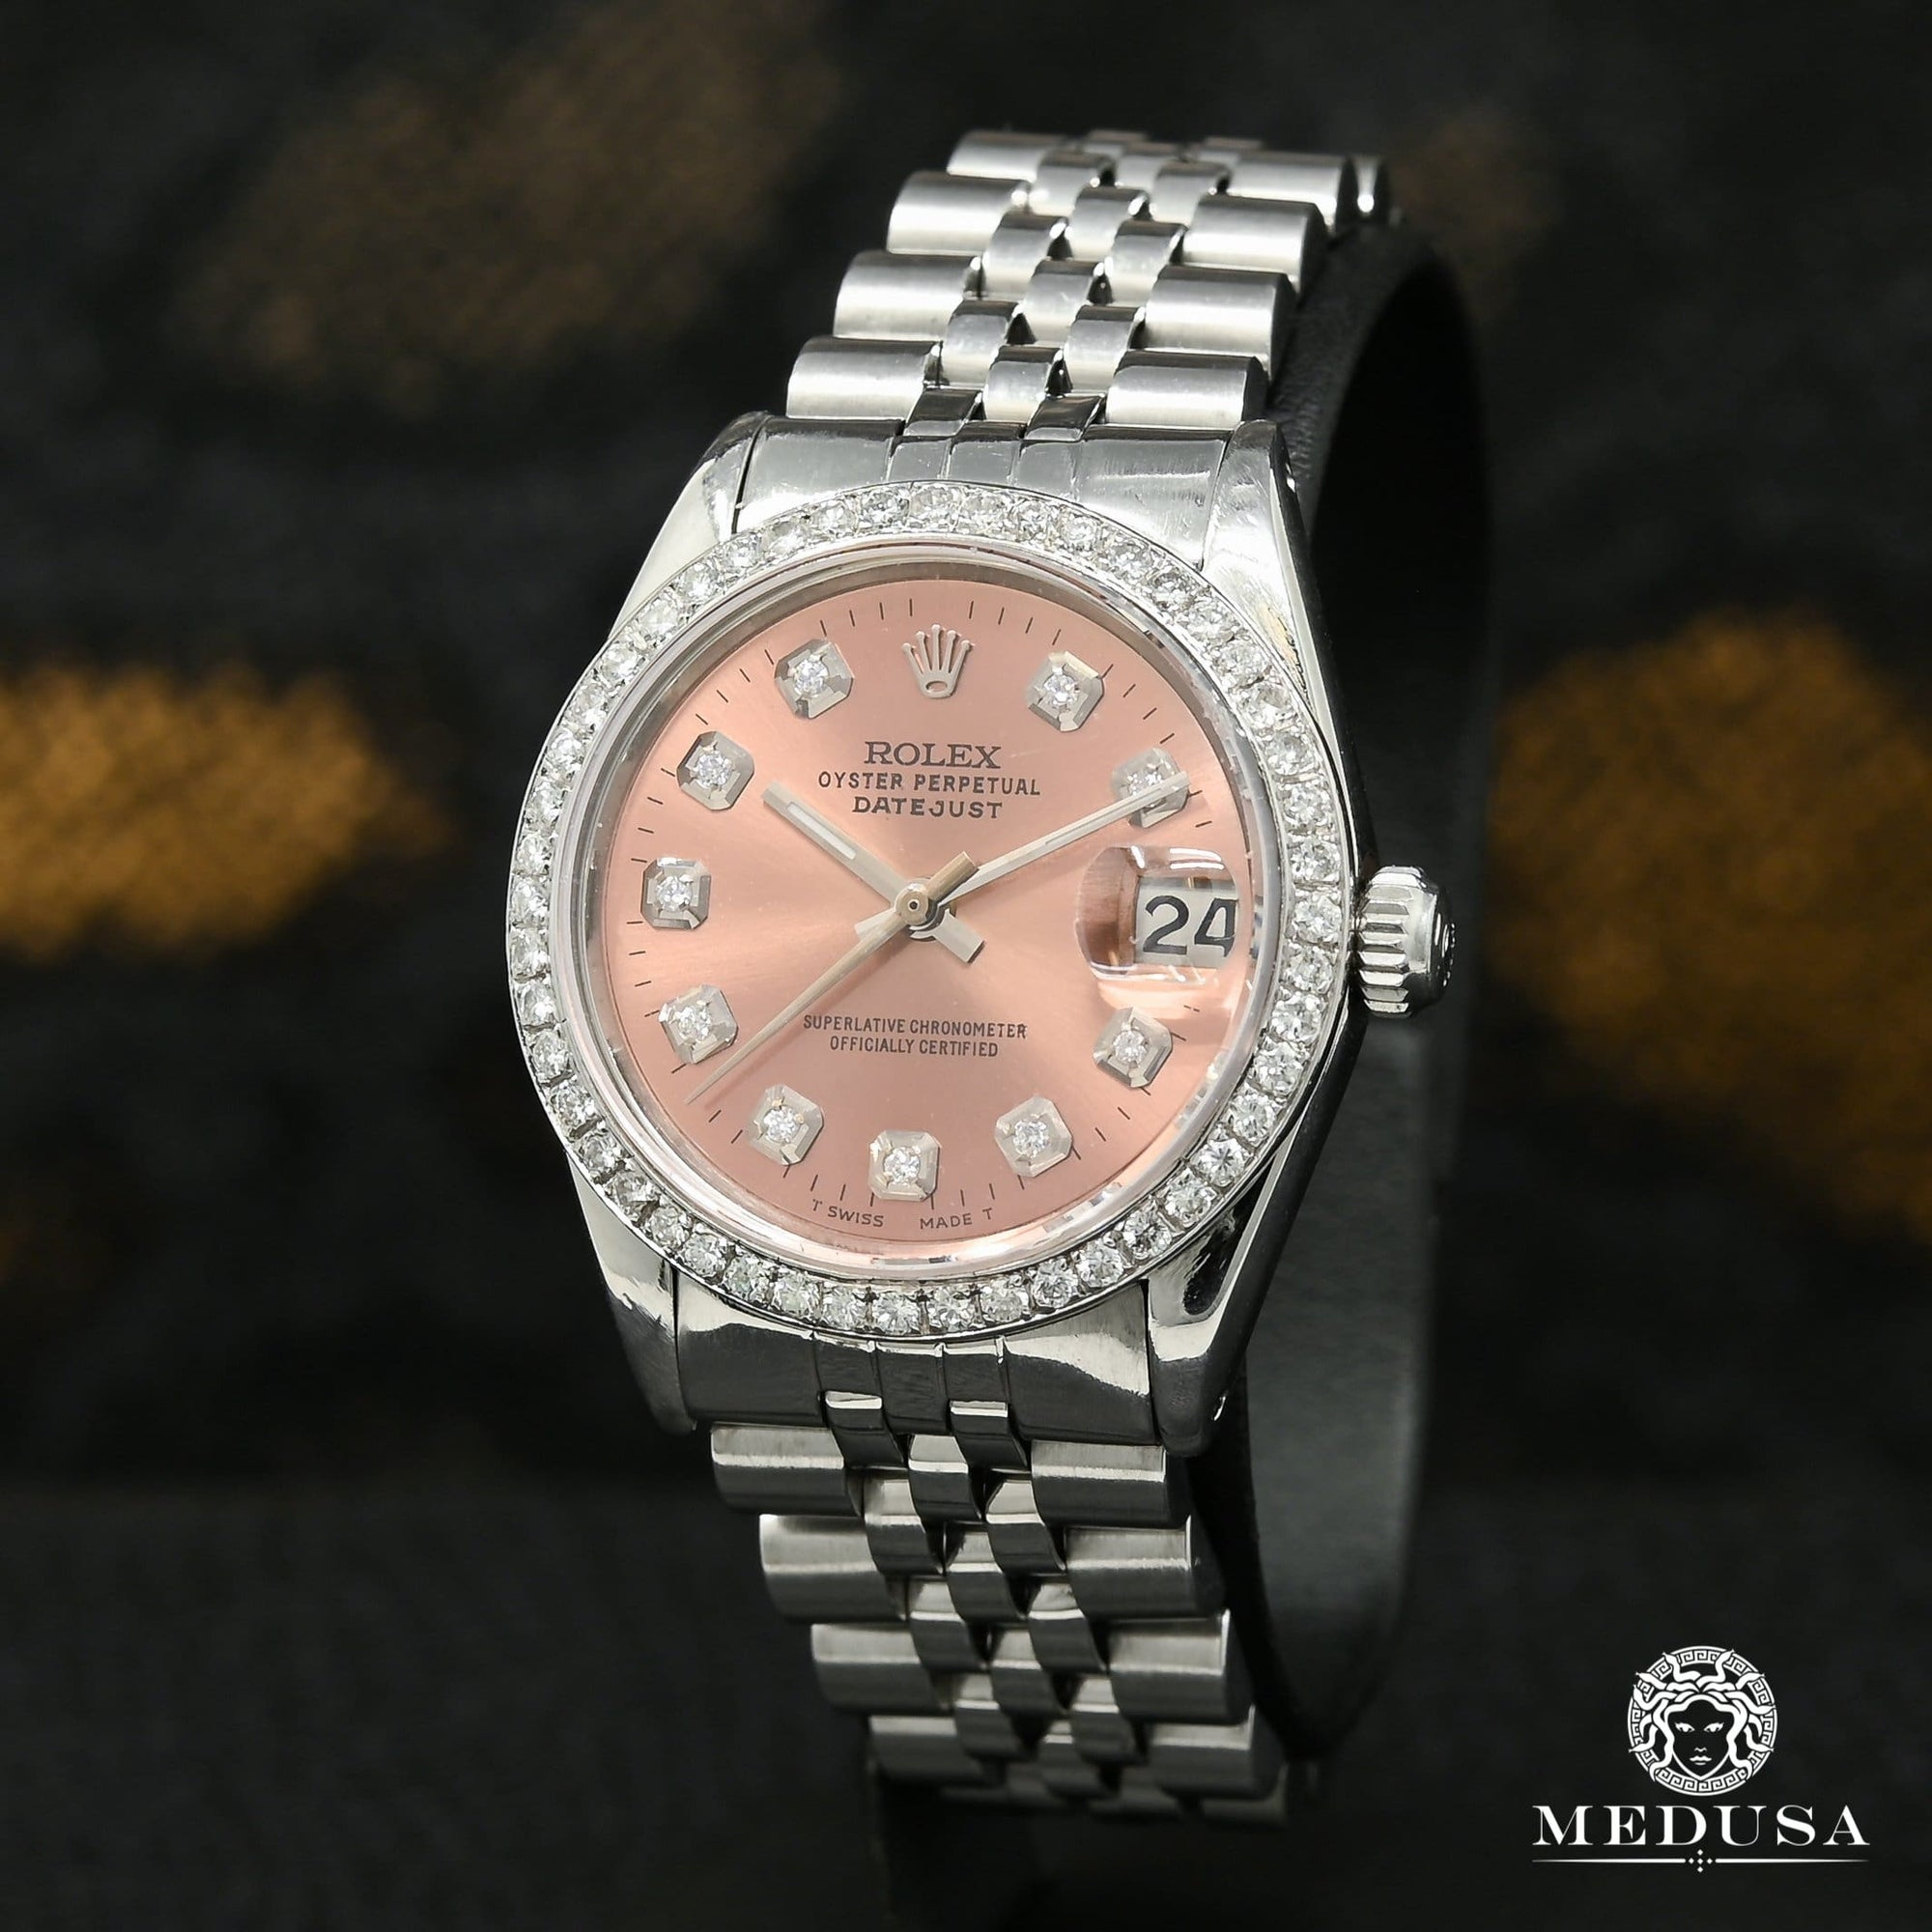 Rolex watch | Rolex Datejust 31mm Woman Watch - Chocolate Stainless Stainless